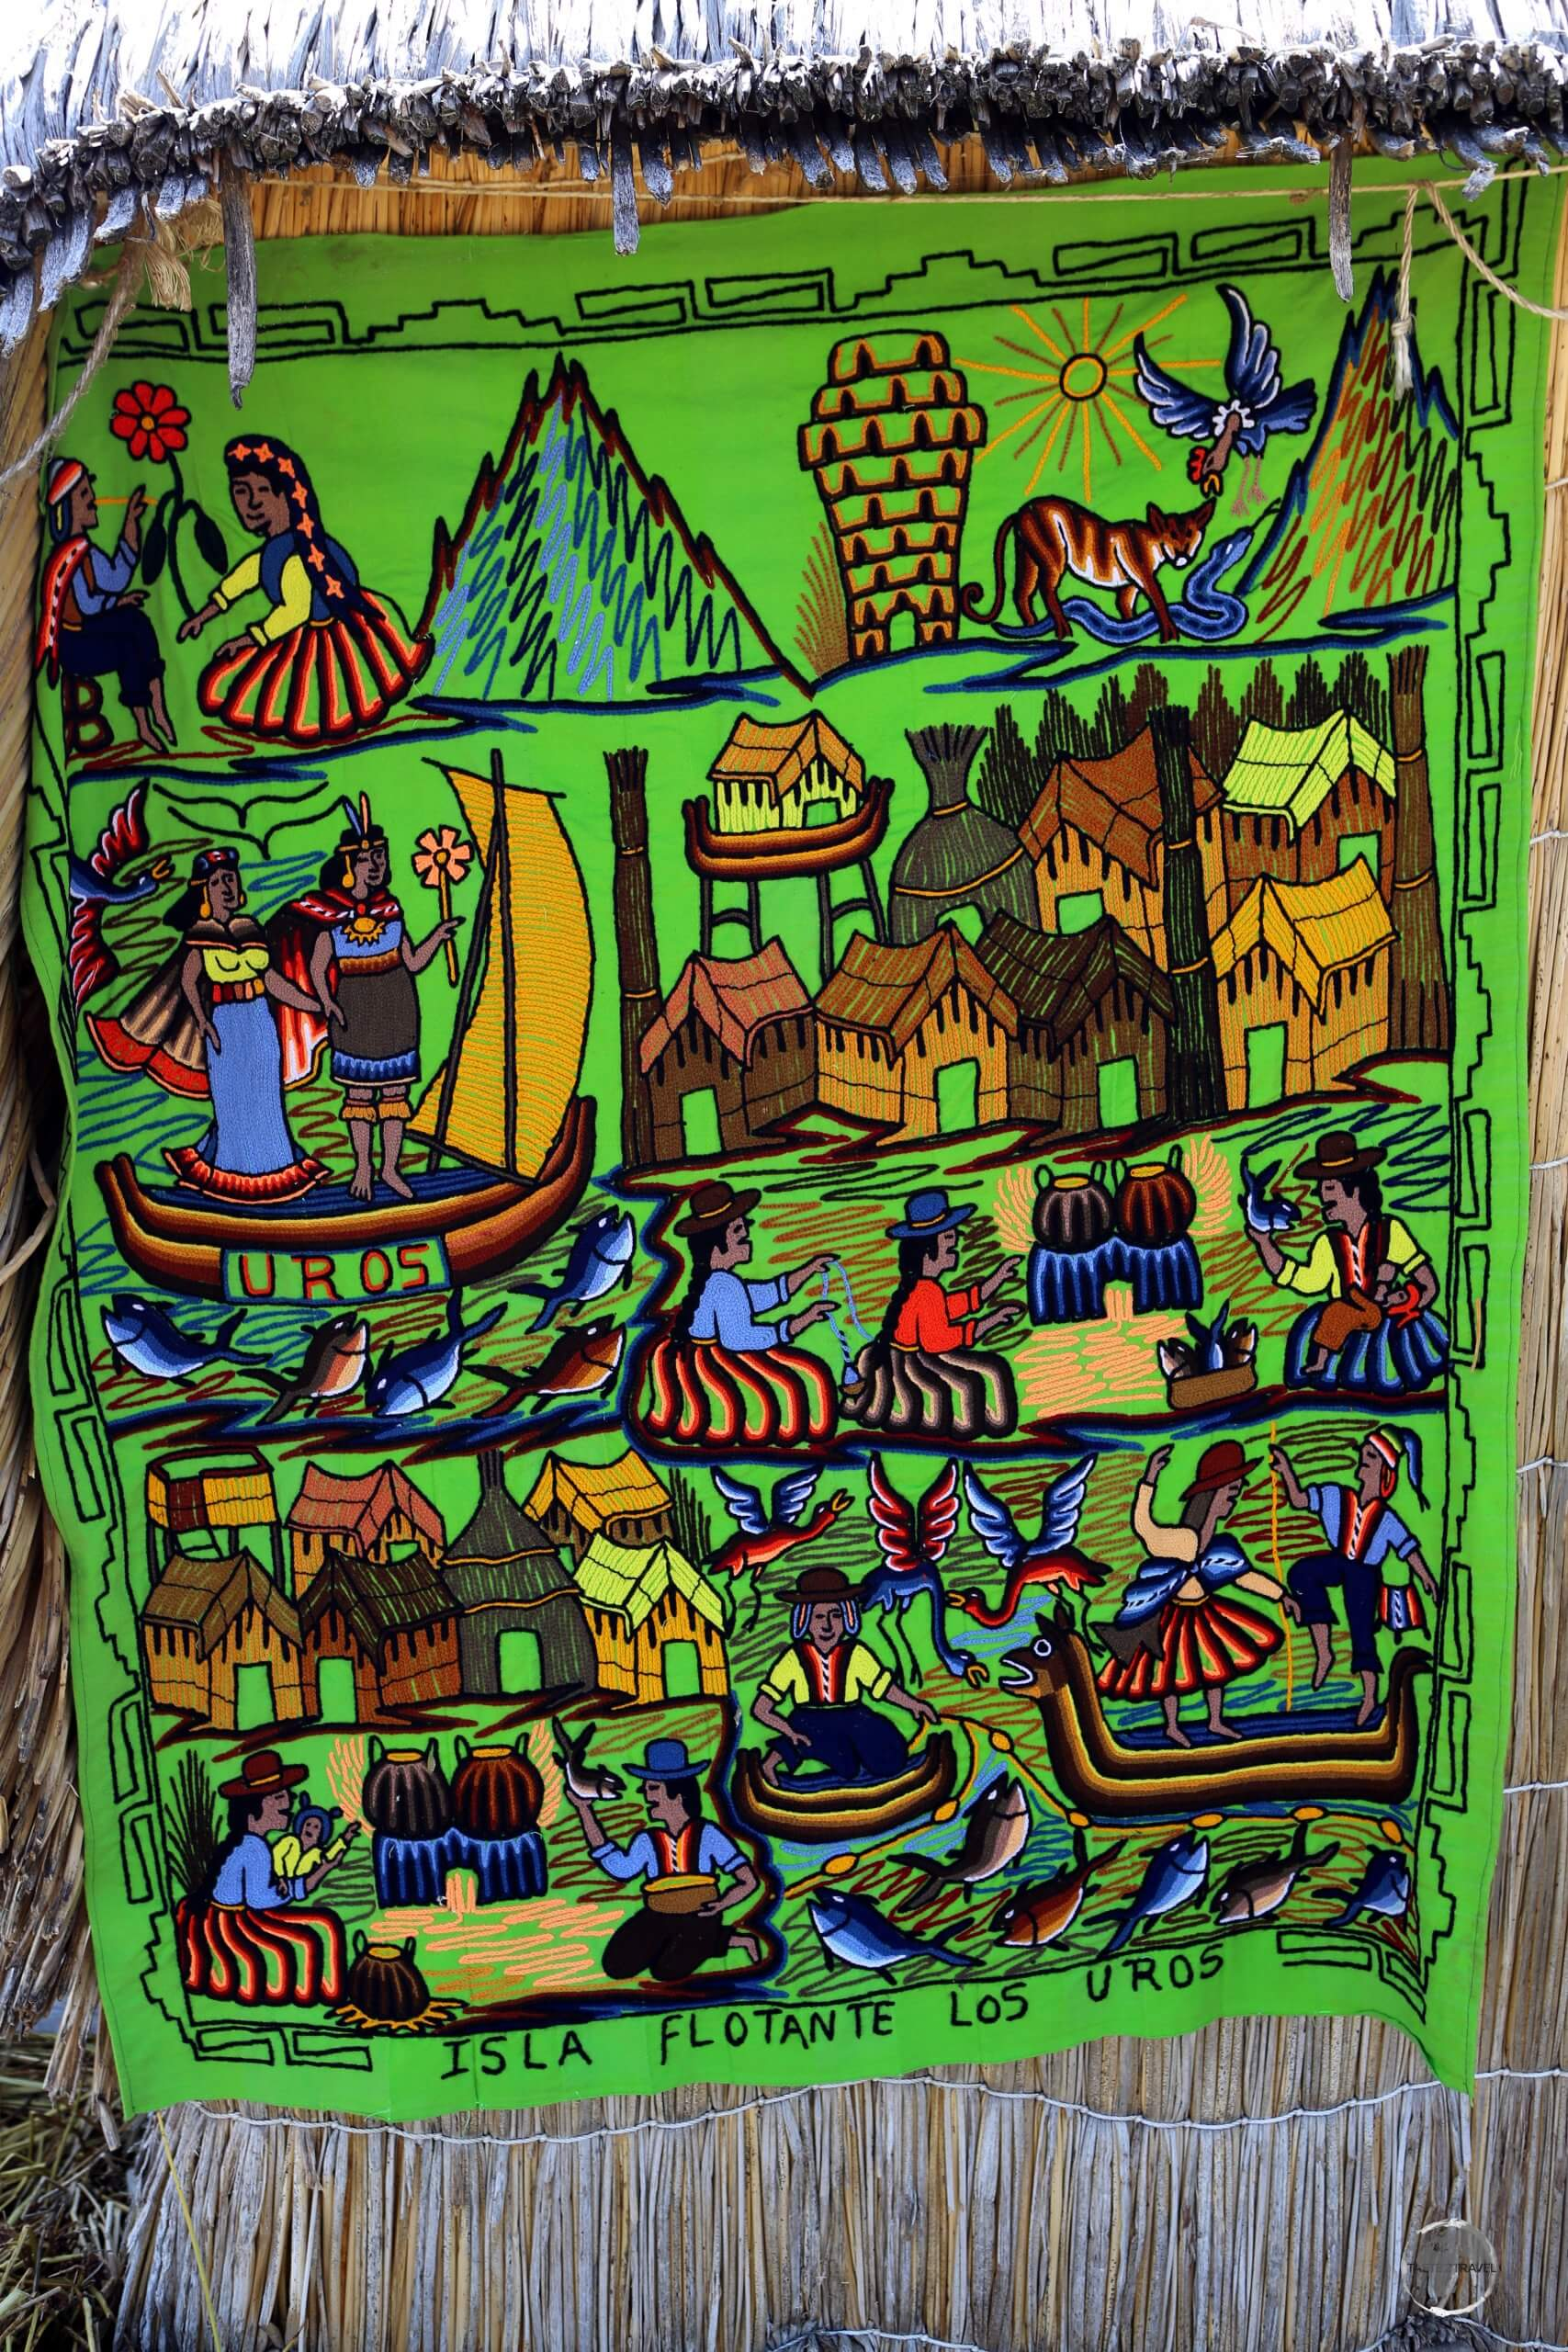 A souvenir wall hanging offers a colourful representation of life on the Uros Islands, a highlight of Lake Titicaca.